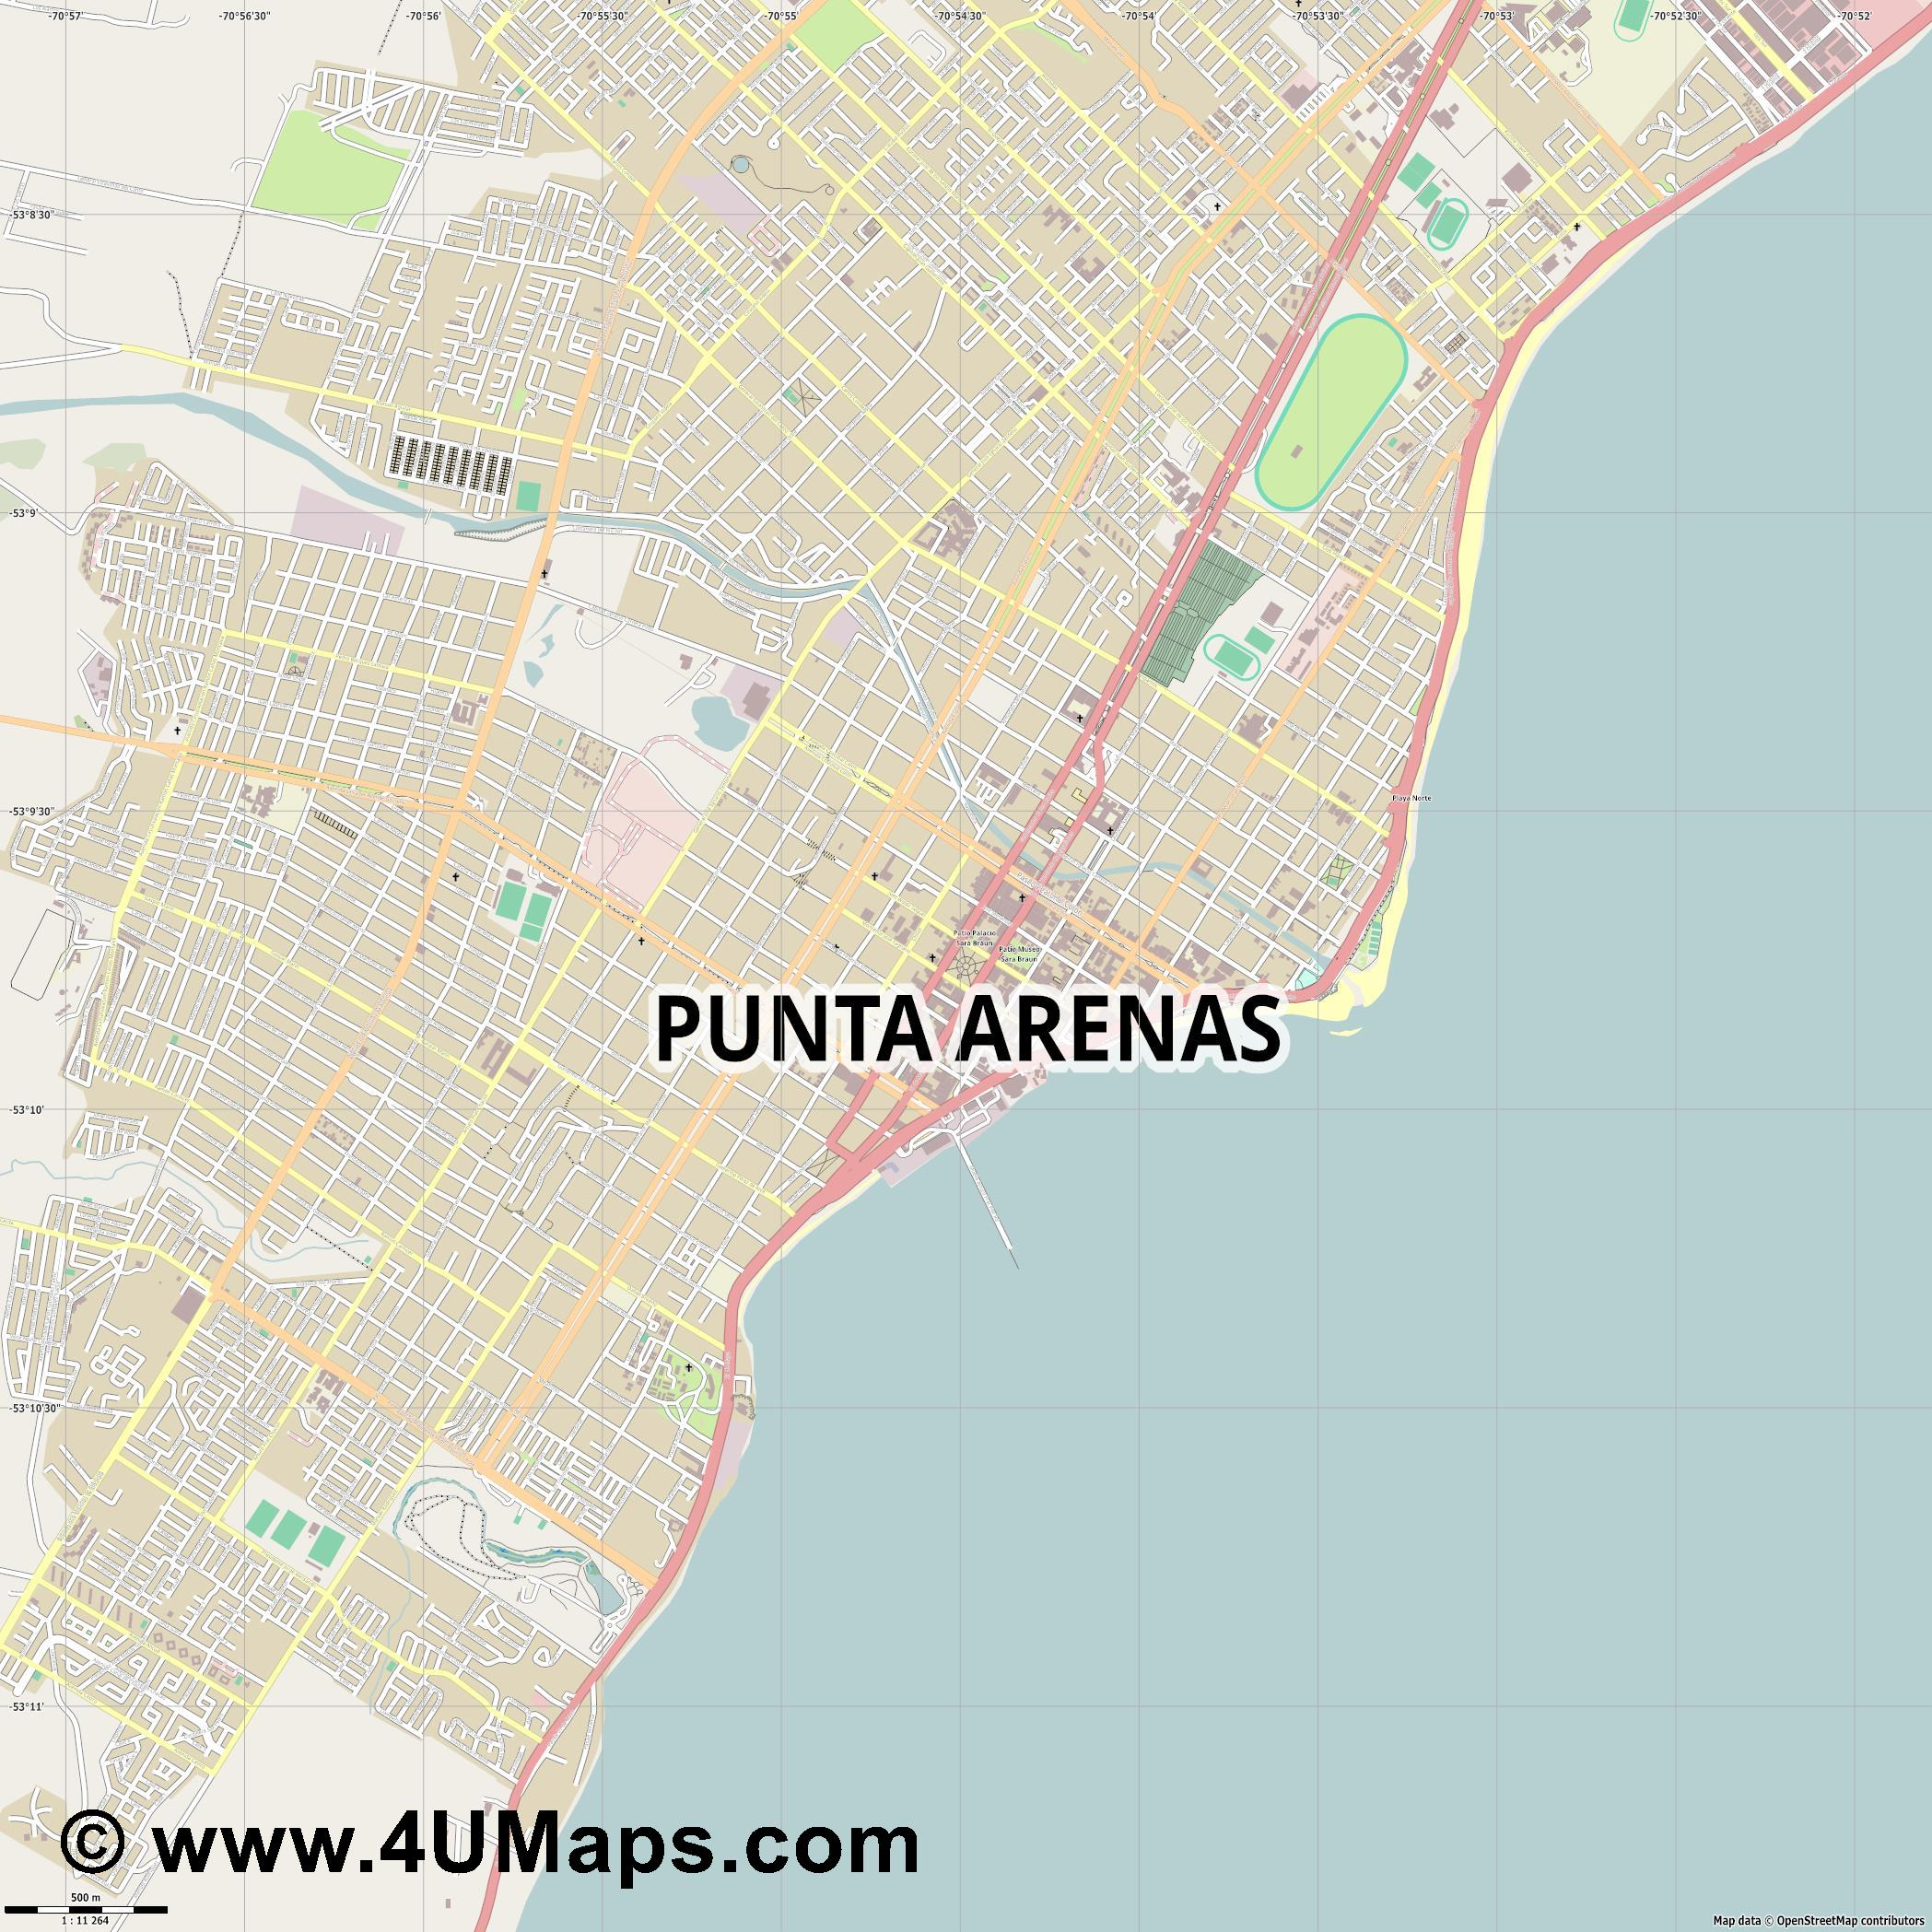 Punta Arenas  jpg ultra high detail preview vector city map